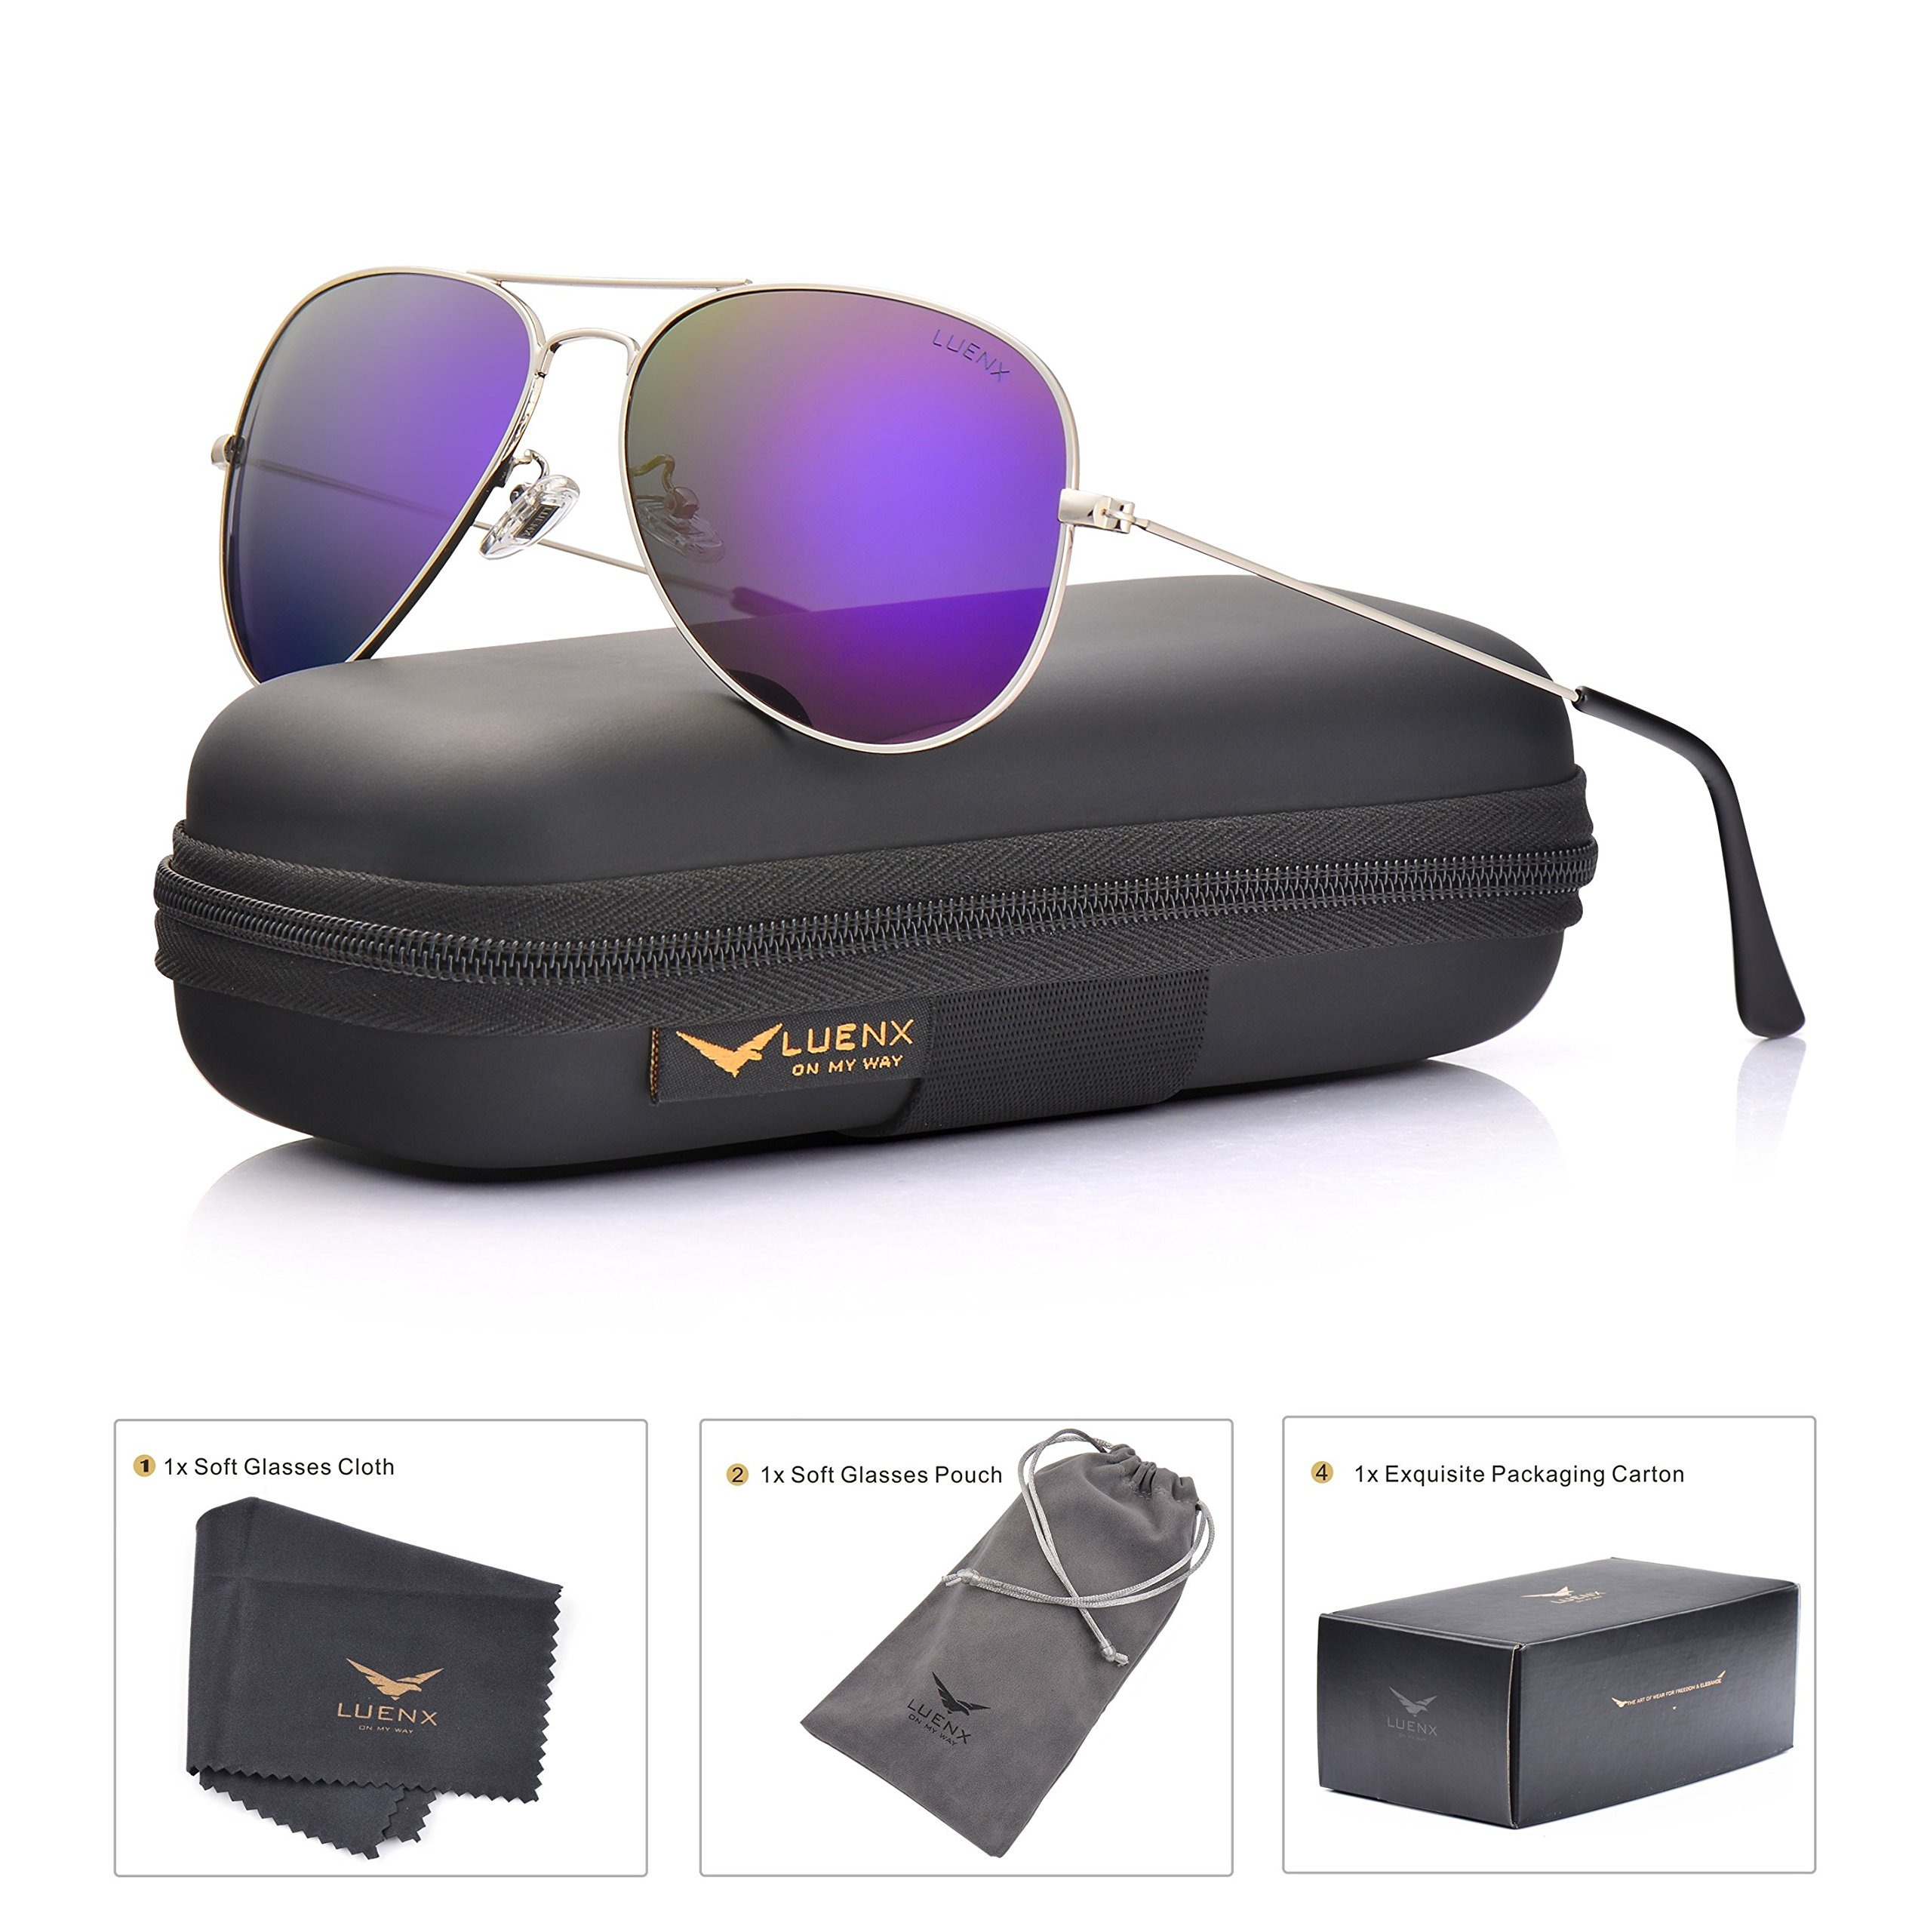 LUENX Womens Mens Aviator Sunglasses Polarized Mirrored Purple lenses Metal Frame 100% UV Protection Classic Style